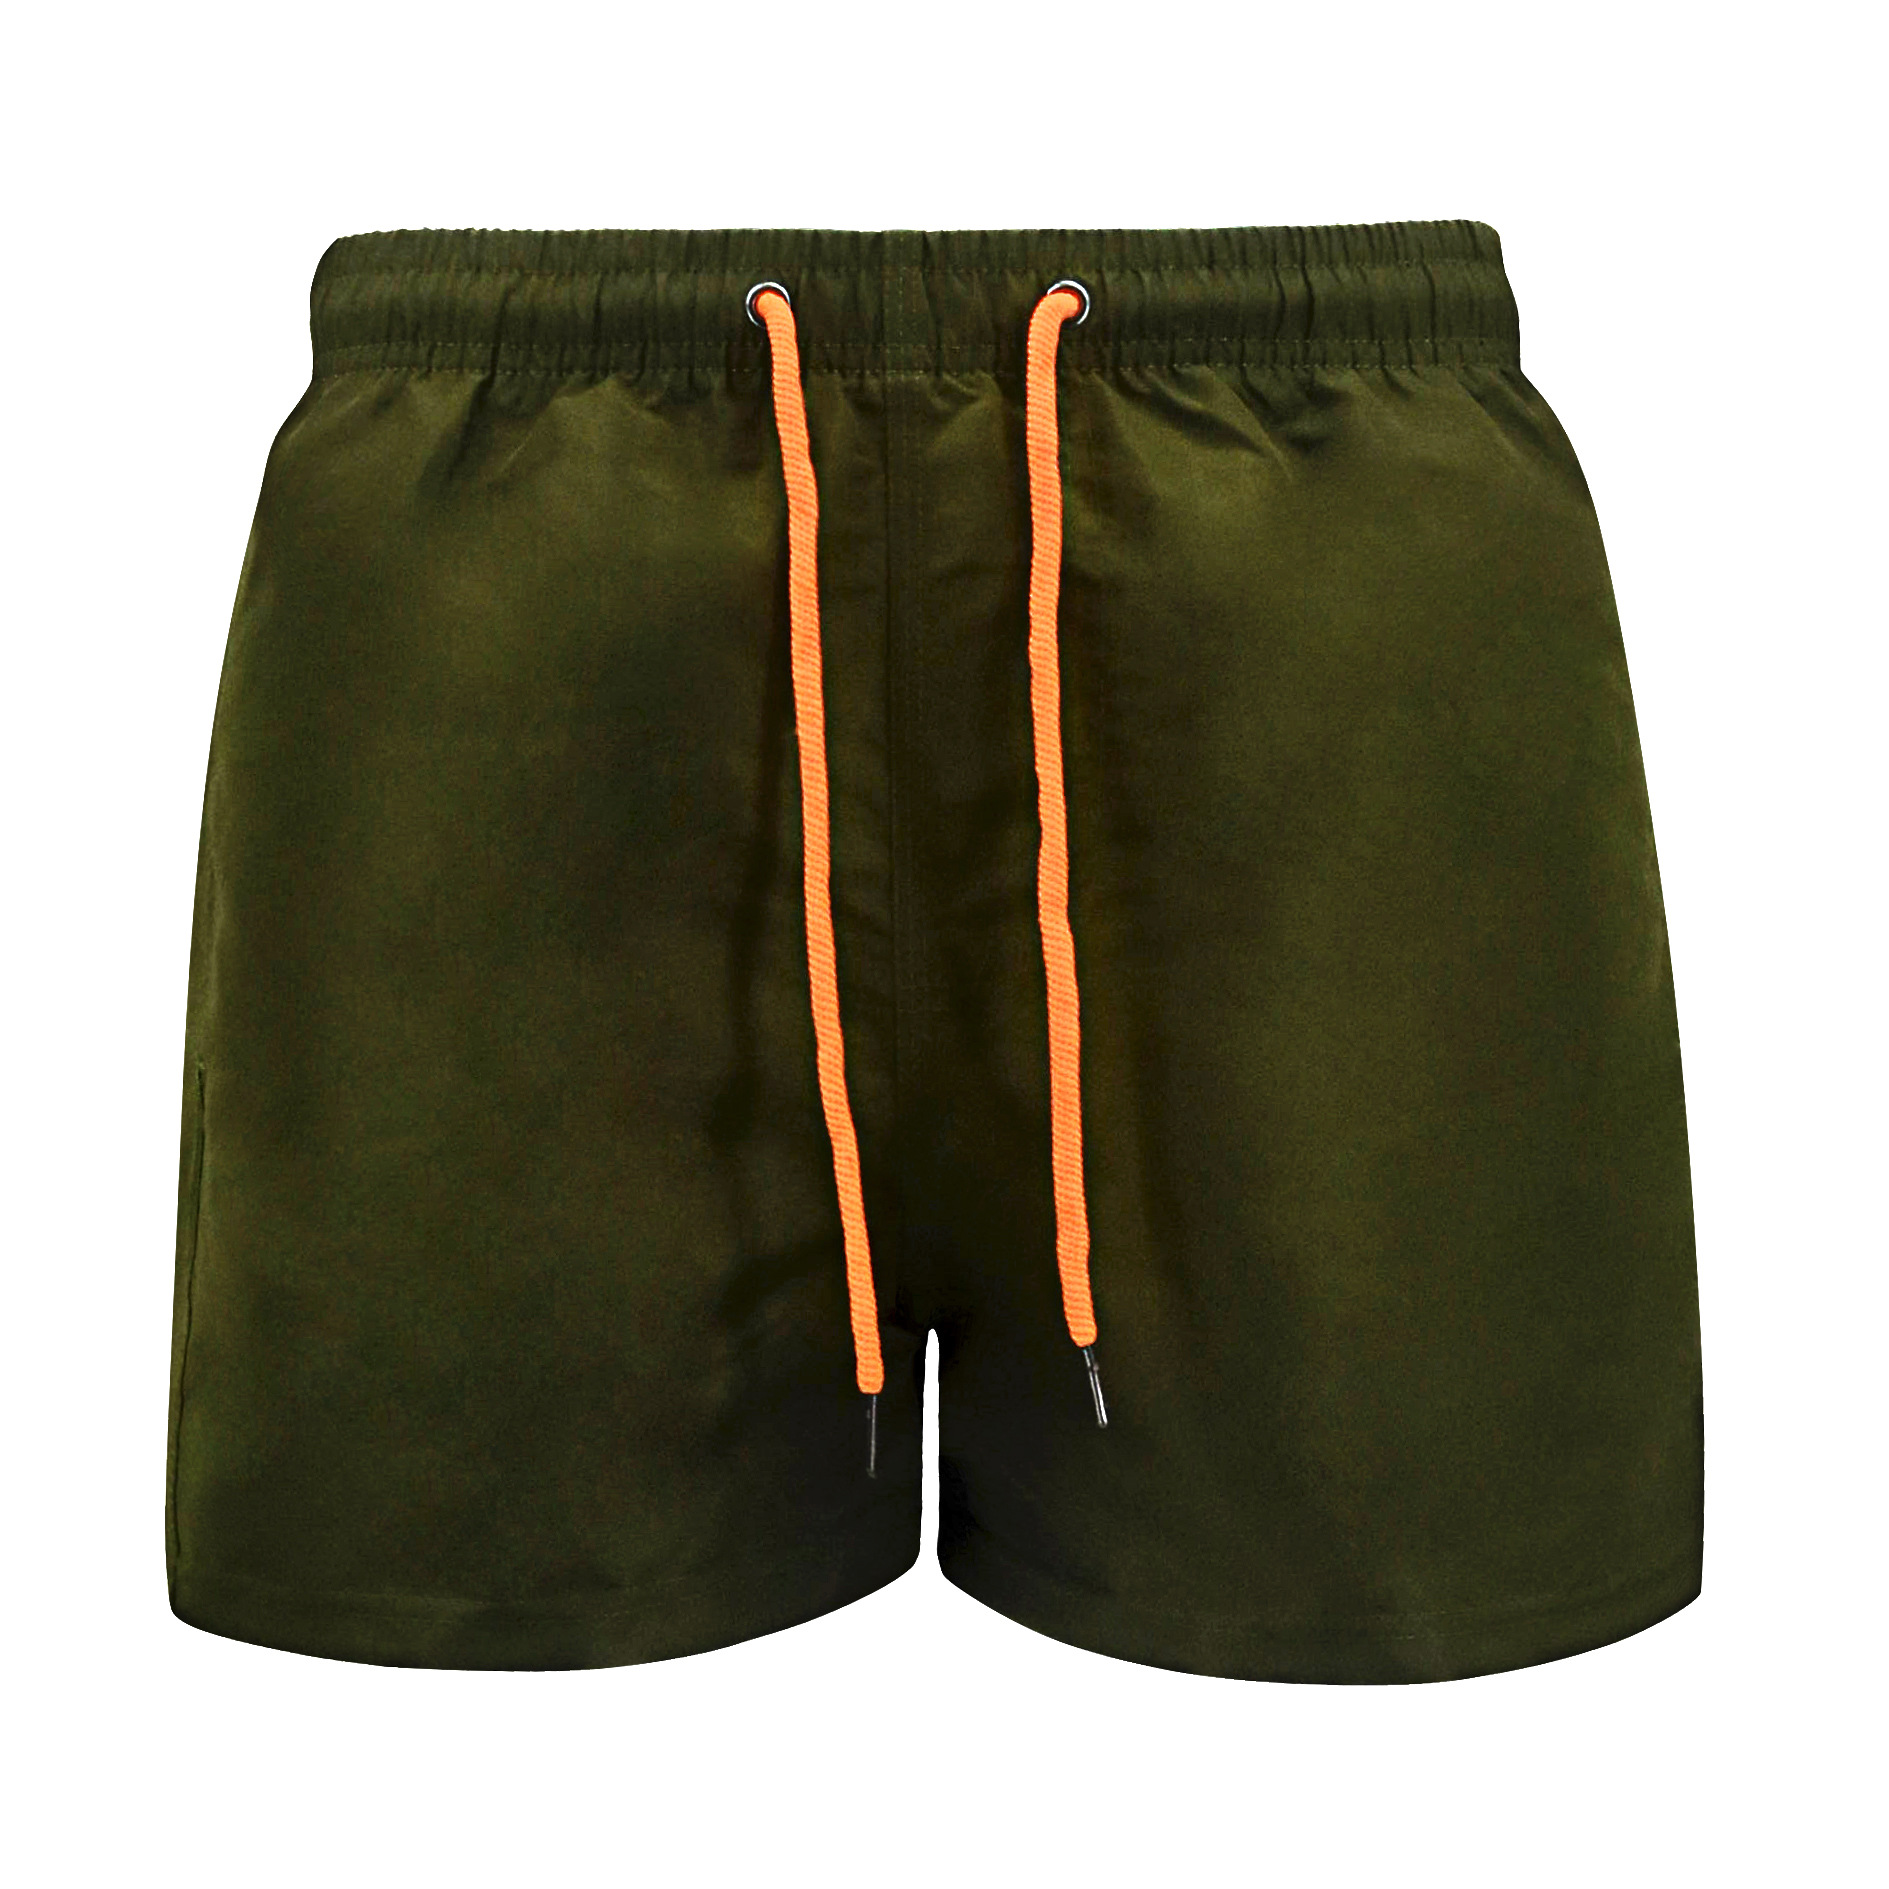 2 Pcs Summer Mens Surf Board Shorts Green Short Beach Shorts Men Lace Up Plus Size Running Jogger Fitness Sports Shorts Male 4xl